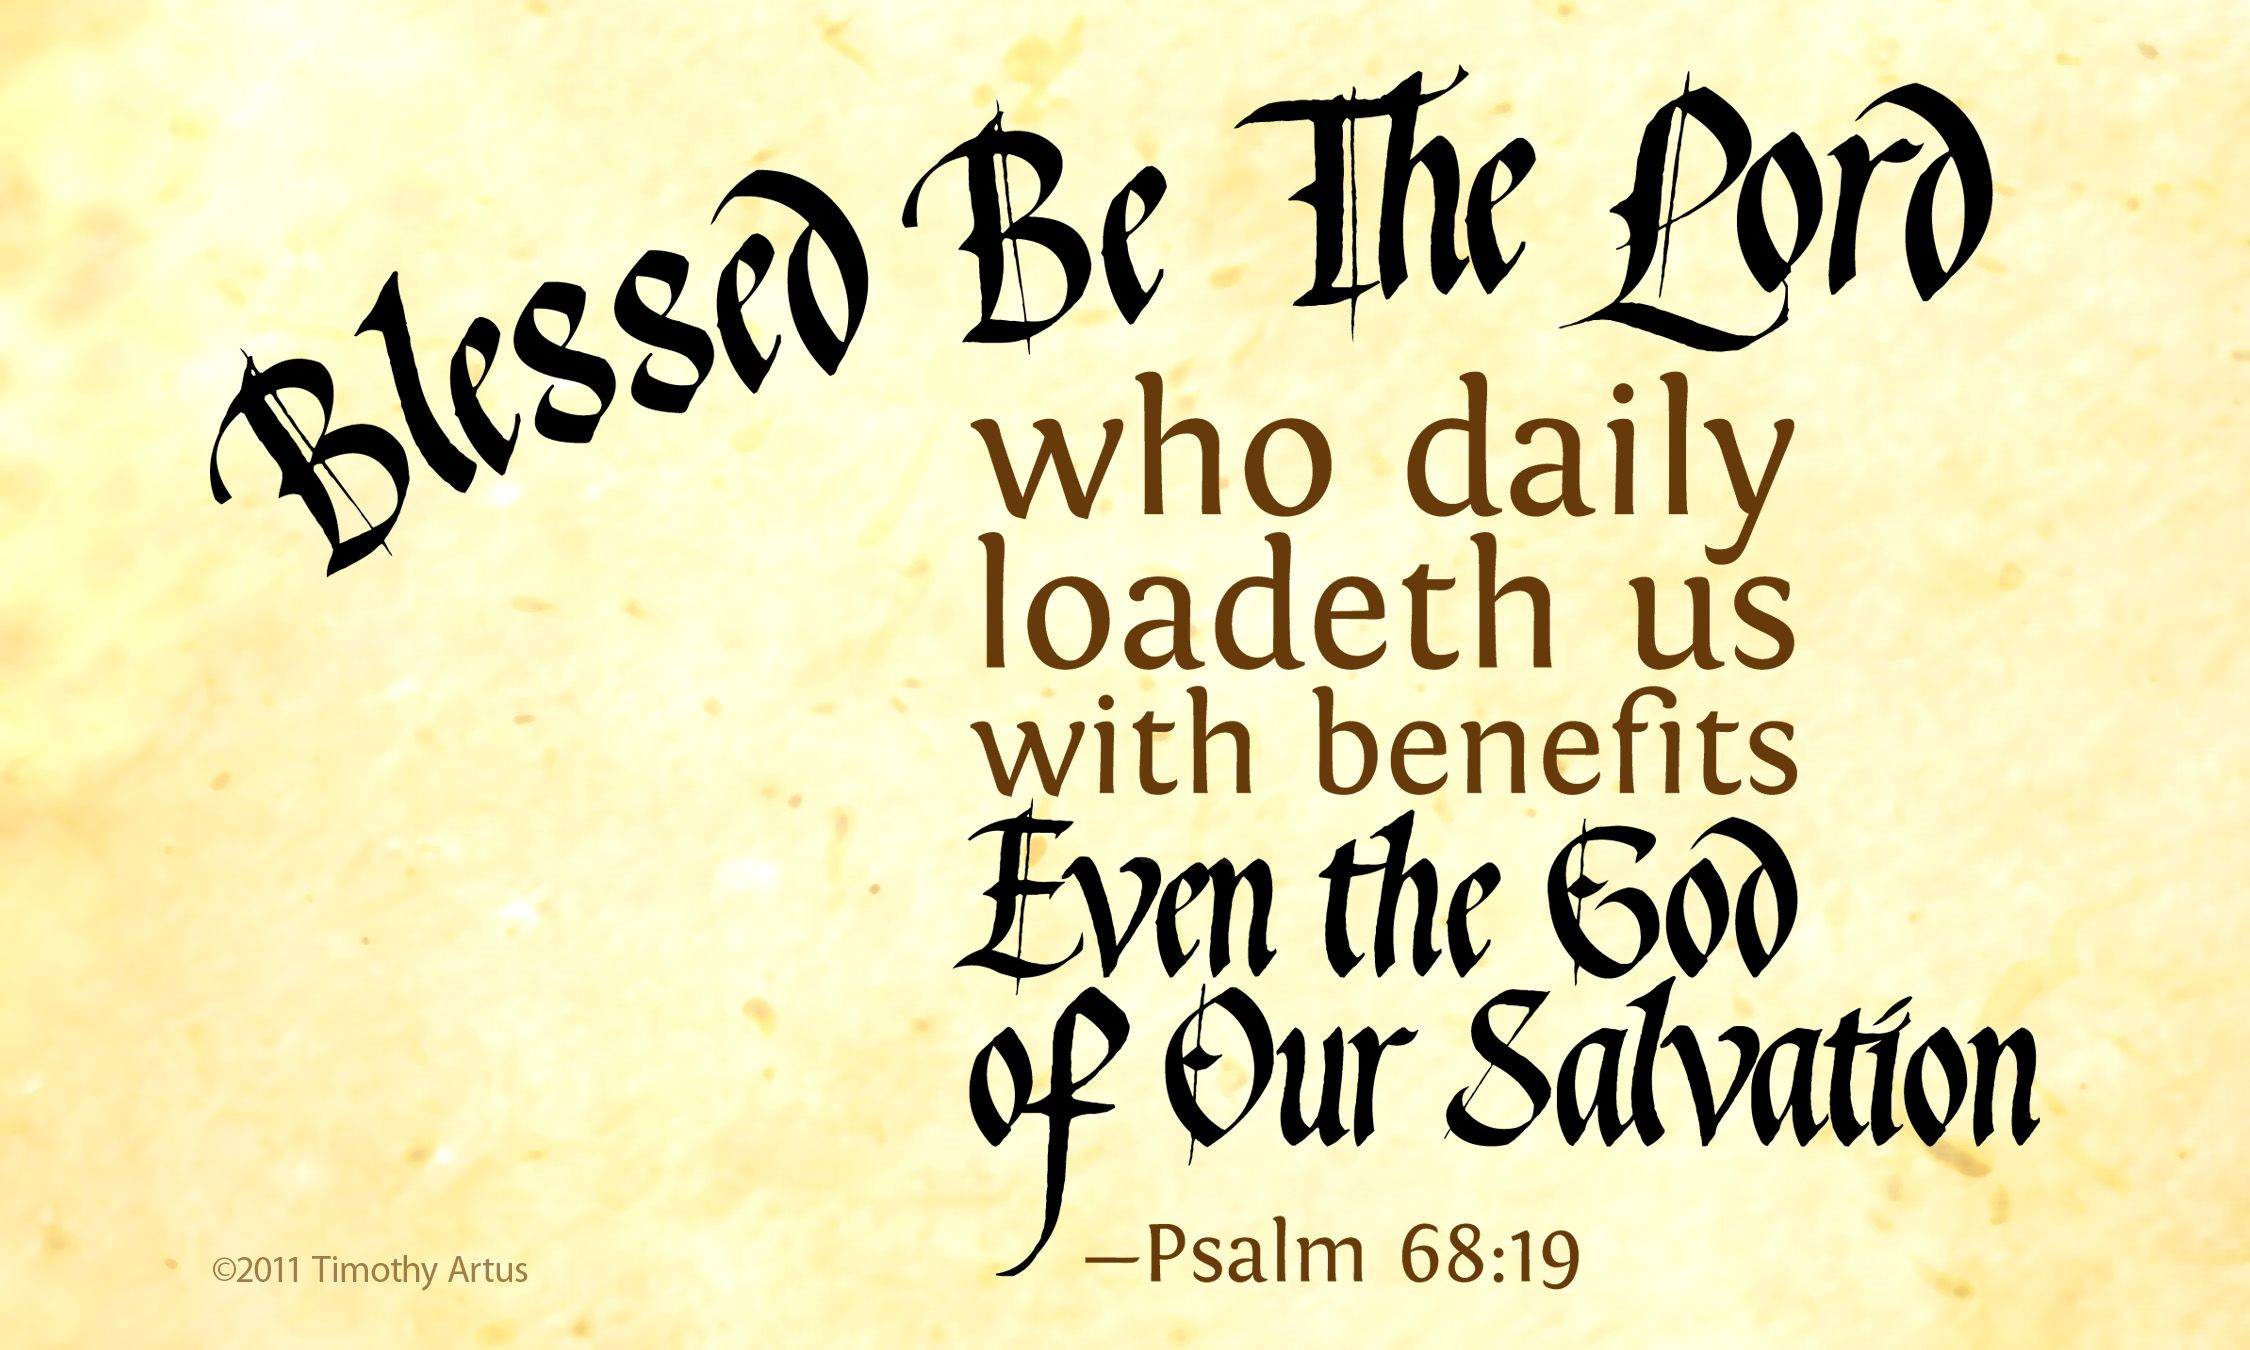 """Psalms 68:19 KJV """"Blessed be the Lord, who daily loadeth us with benefits,  even the God of our salvation. Selah."""" - P… 